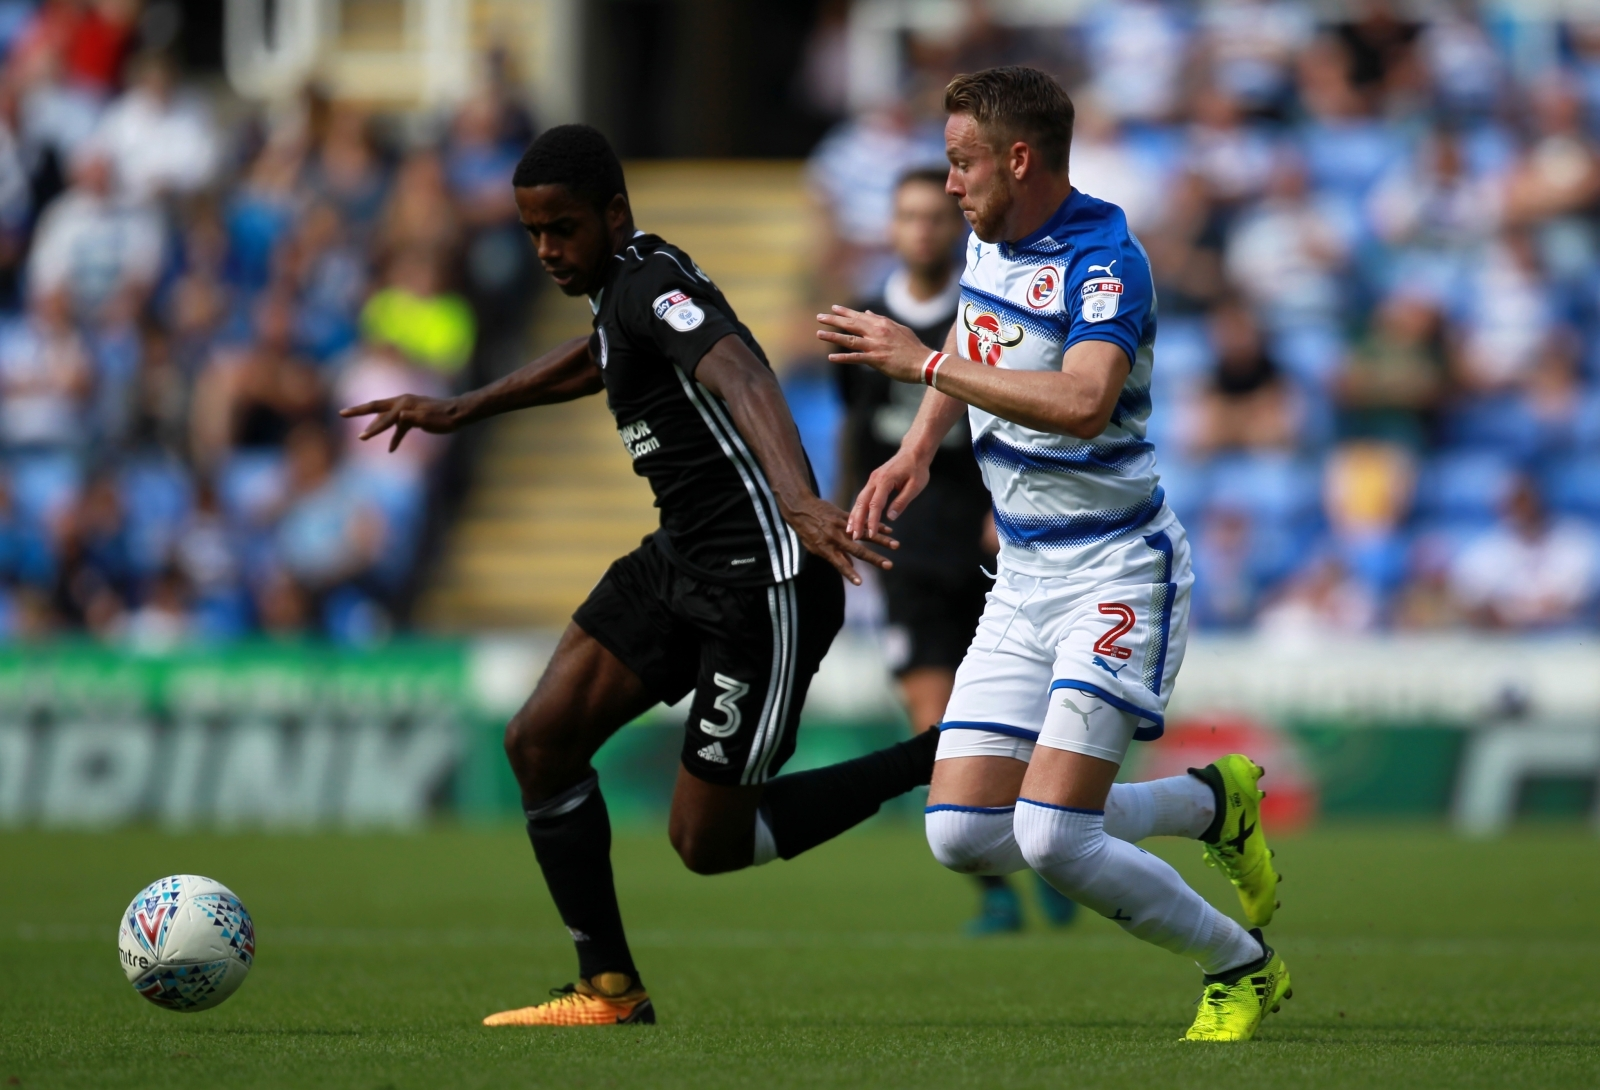 Ryan Sessegnon of 'significant interest' to Manchester United if Fulham stance changes